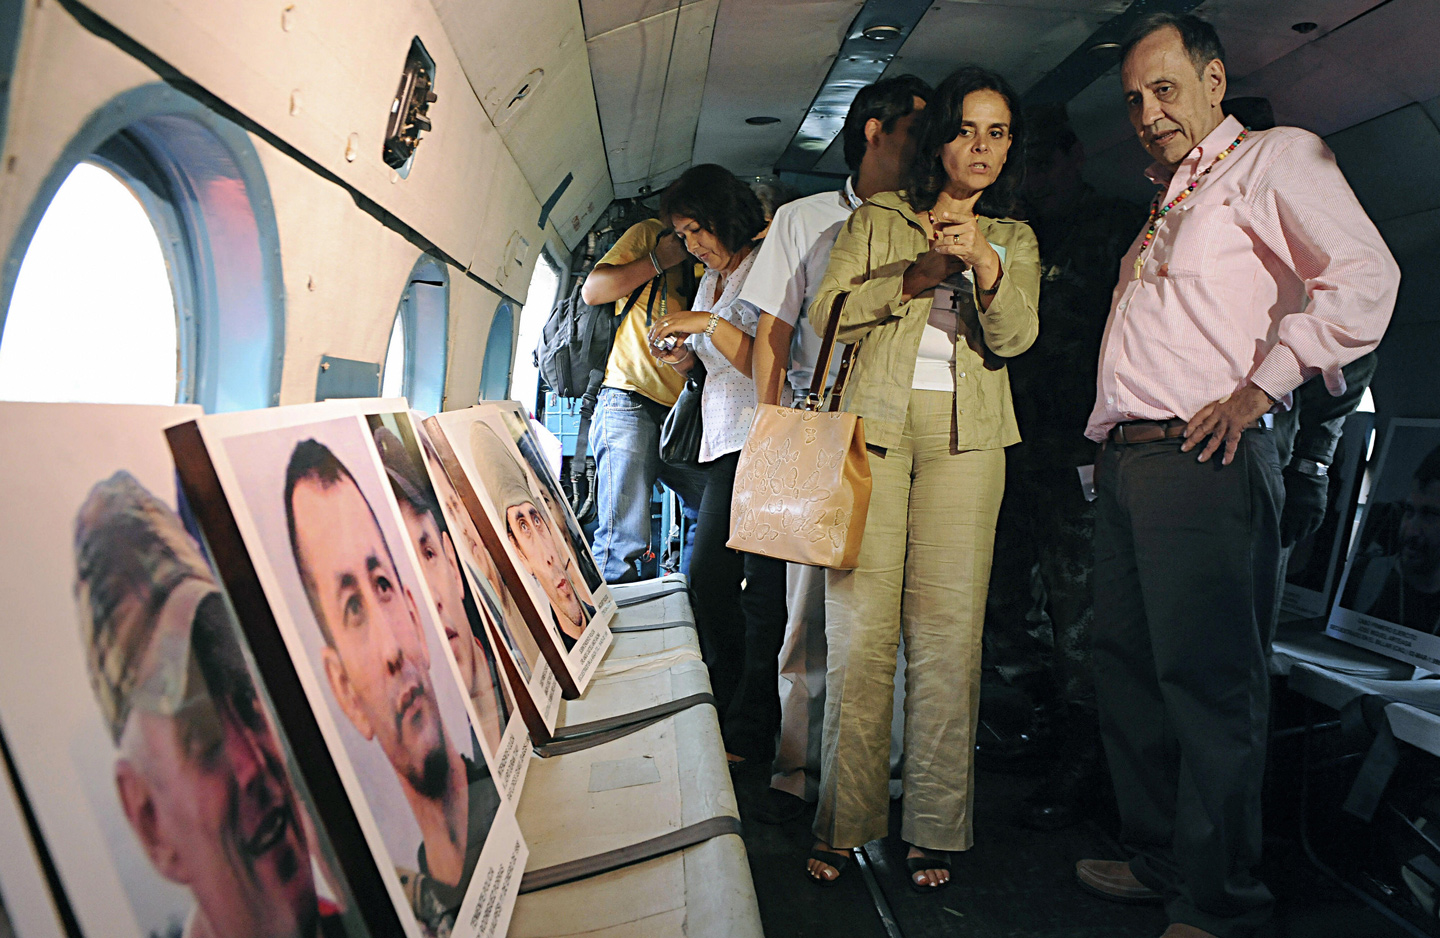 Former guerrilla hostage Oscar Tulio Lizcano (R) and his wife Martha look at pictures of the FARC hostages released during the Army's Jaque Operation, after thanking the soldiers of the third division of the National Army during a religious ceremony in Cali, department of Valle del Cauca, Colombia, on October 31, 2008. Former lawmaker Lizcano thanked the soldiers for helping him after he escape to freedom the past weekend, towed by his jailer, former guerrilla member Wilson Bueno Largo, aka 'Isaza', who deserted from the rebel ranks.  AFP PHOTO/Luis ROBAYO (Photo credit should read LUIS ROBAYO/AFP/Getty Images)